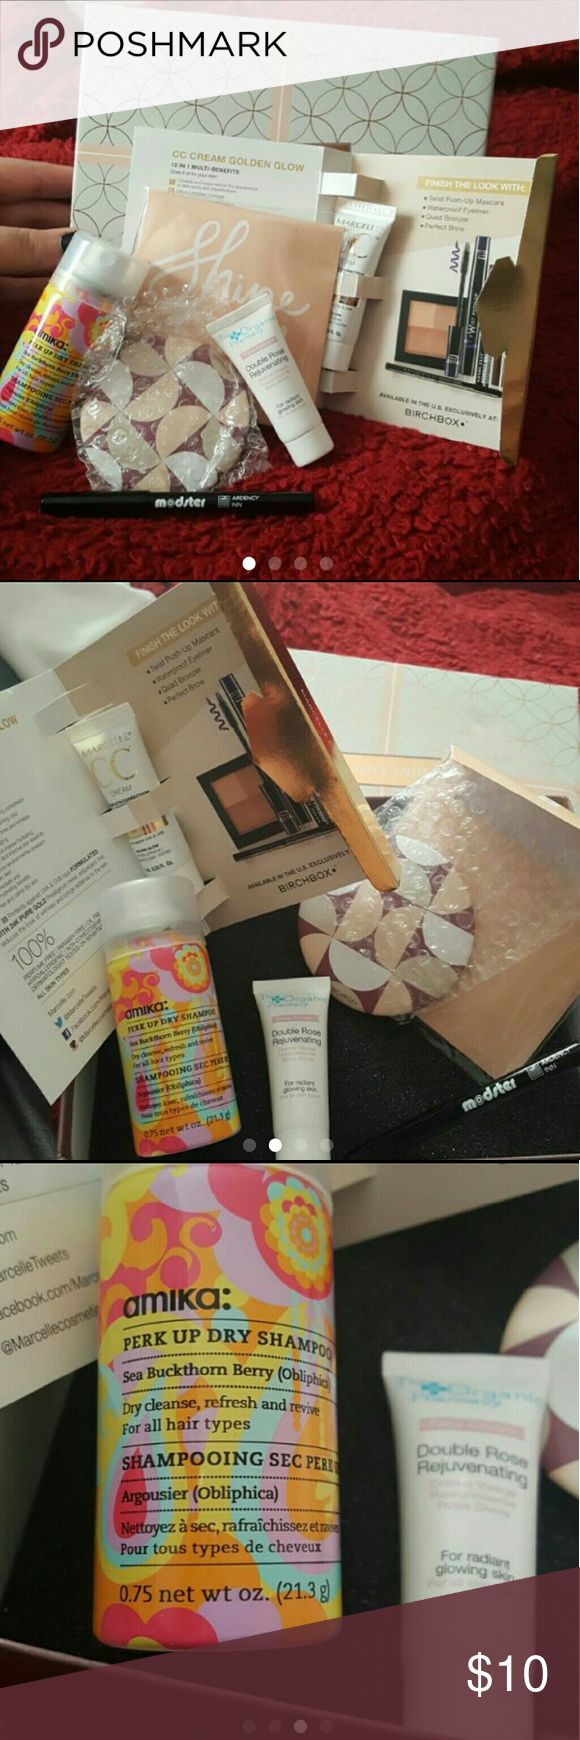 Birchbox All items are new, unopened   Birchbox including:  Amika perk up dry shampoo  Geometric compact mirror  Modster eyeliner (black )  Marcelle BB cream  Organic pharmacy double rose creme organic pharmacy  Makeup